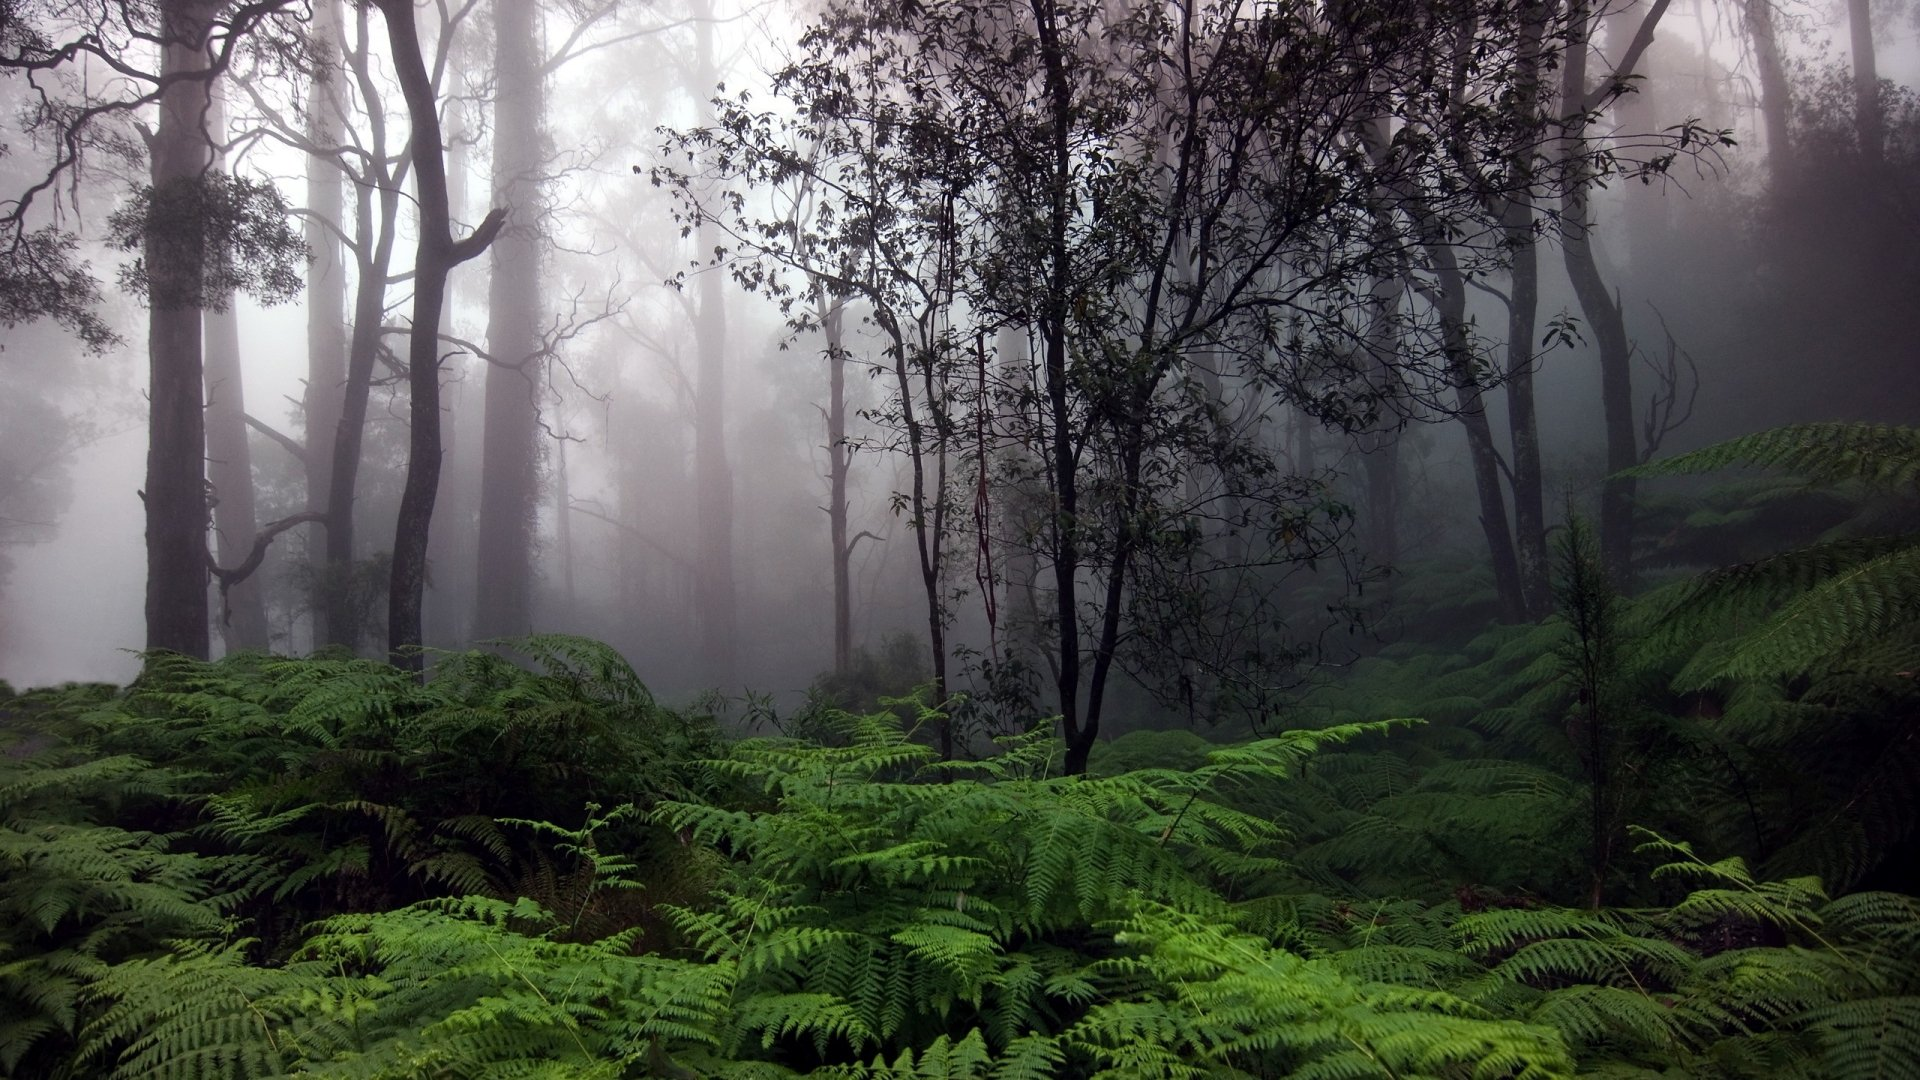 Free Download Rainforest Hd Wallpaper 1920x1080 For Your